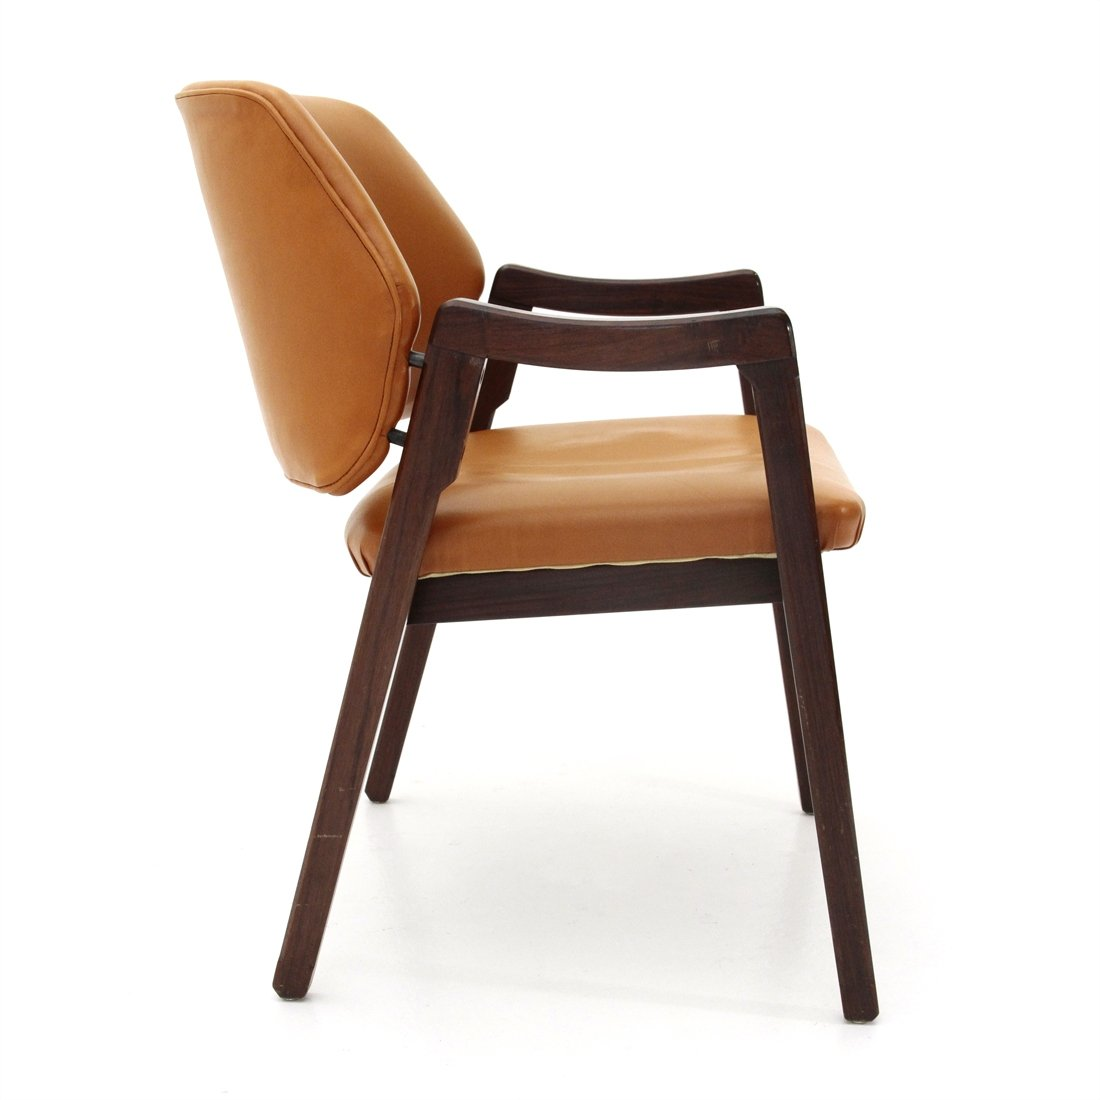 Midcentury Brown Leather Chair By Ico Parisi For Cassina 1960 S 118297